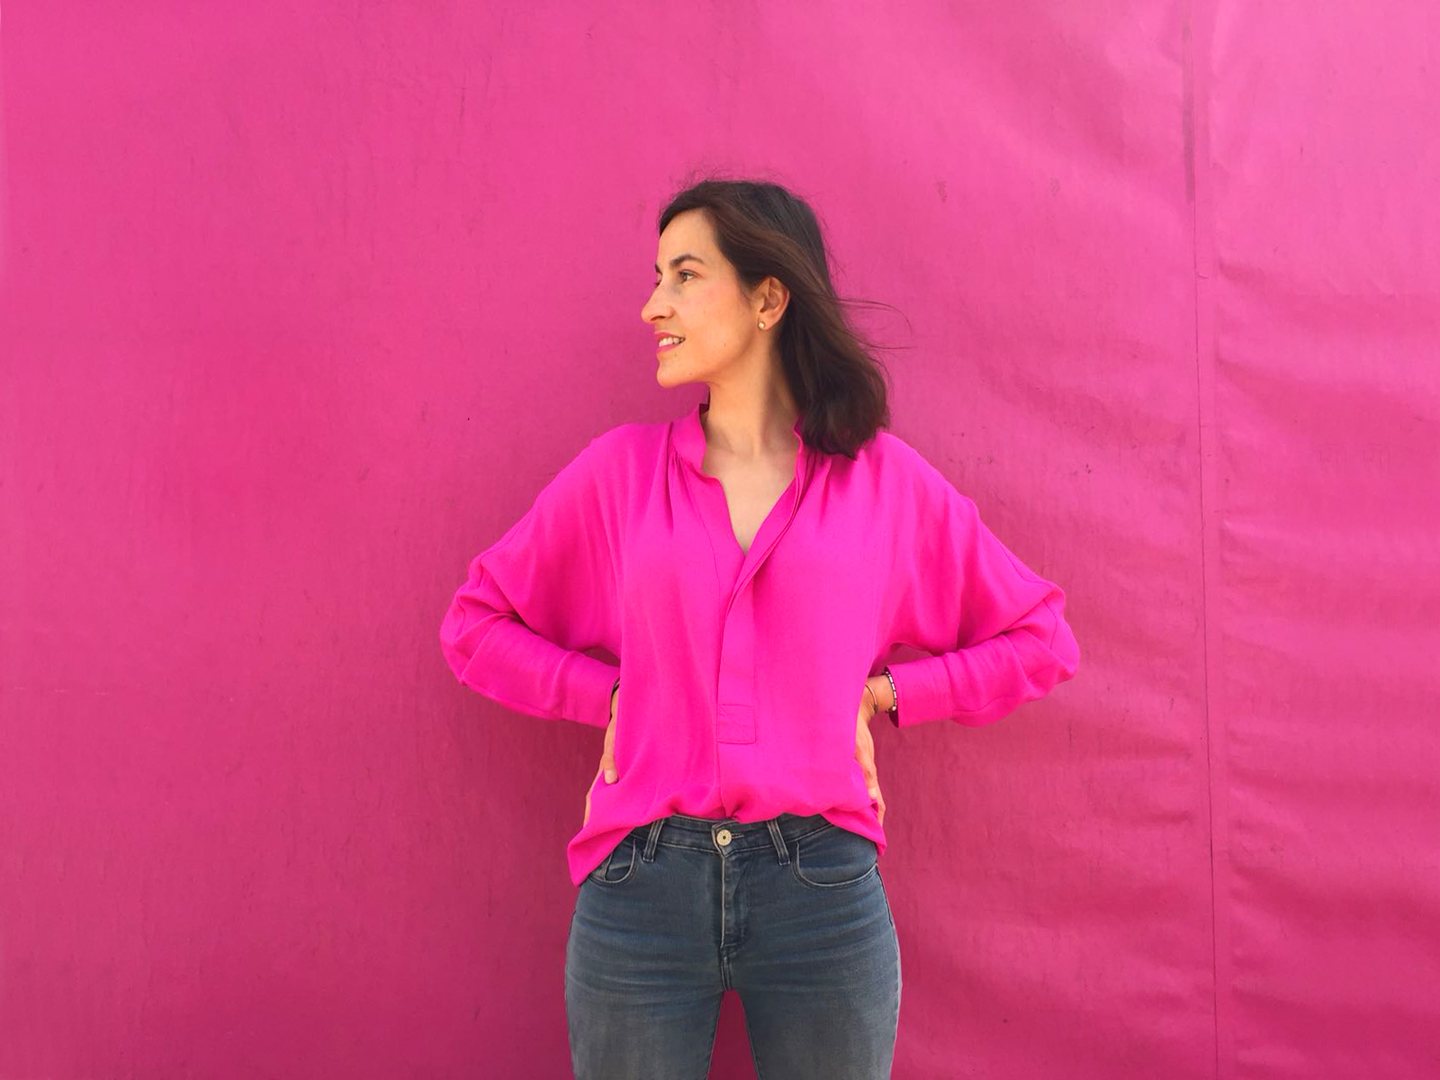 Style Indigo wearing a pink dress as a shirt to achieve the 30 wears challenge